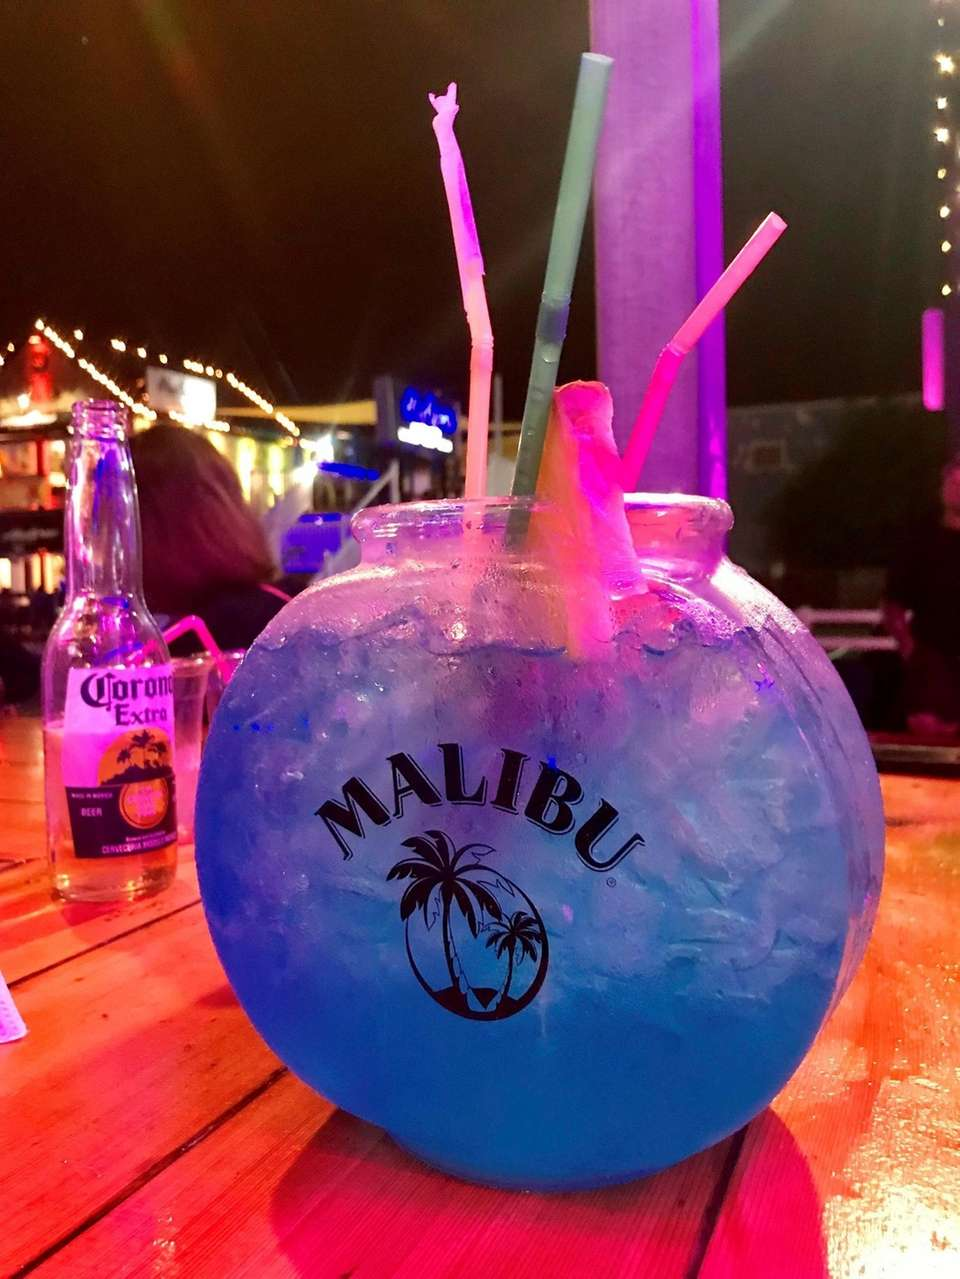 The Ultimate Fish Bowl is the signature cocktail